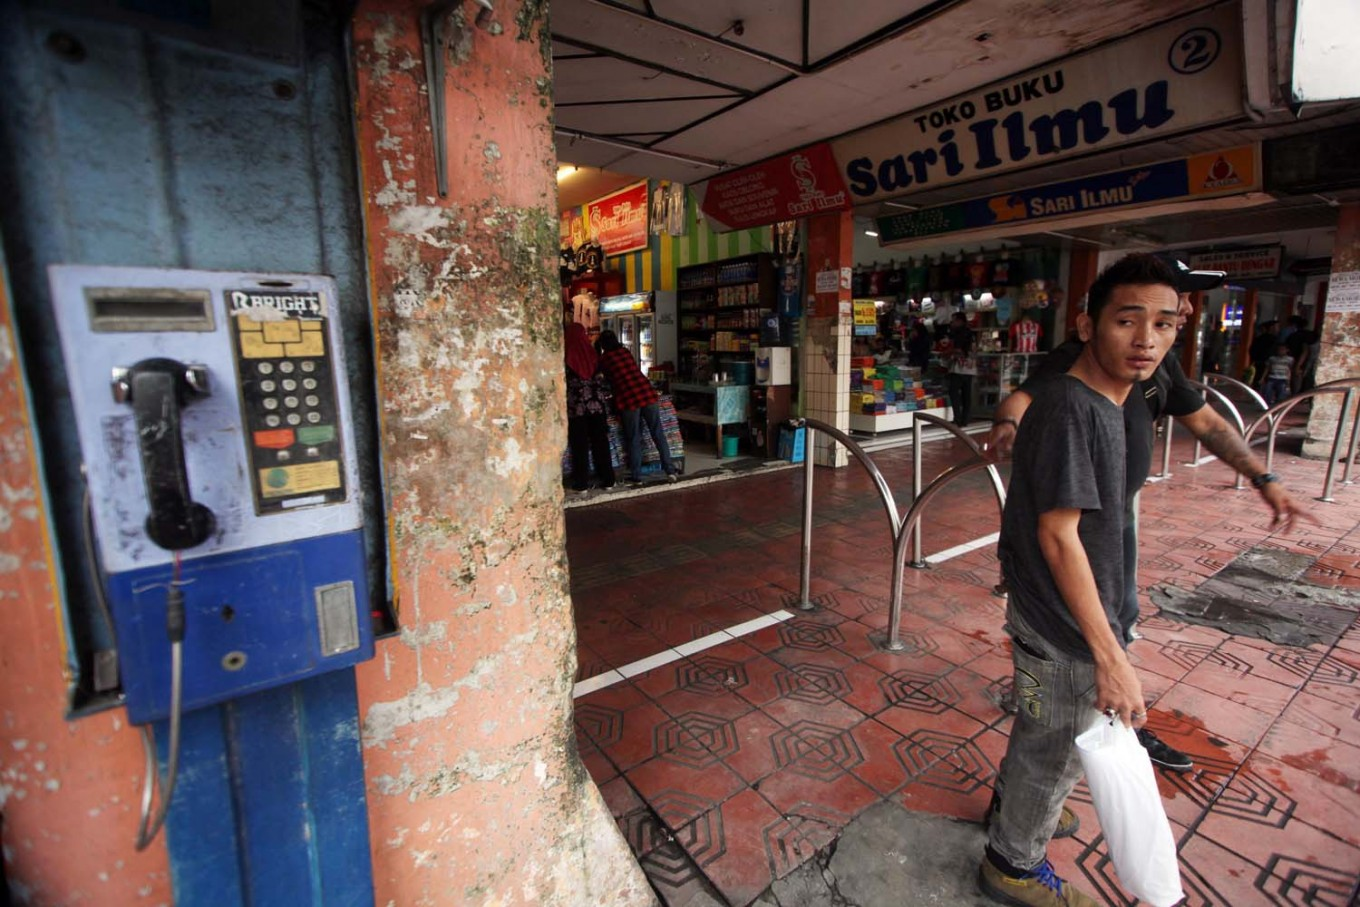 Two men exit a building on Malioboro. JP/Boy T. Harjanto